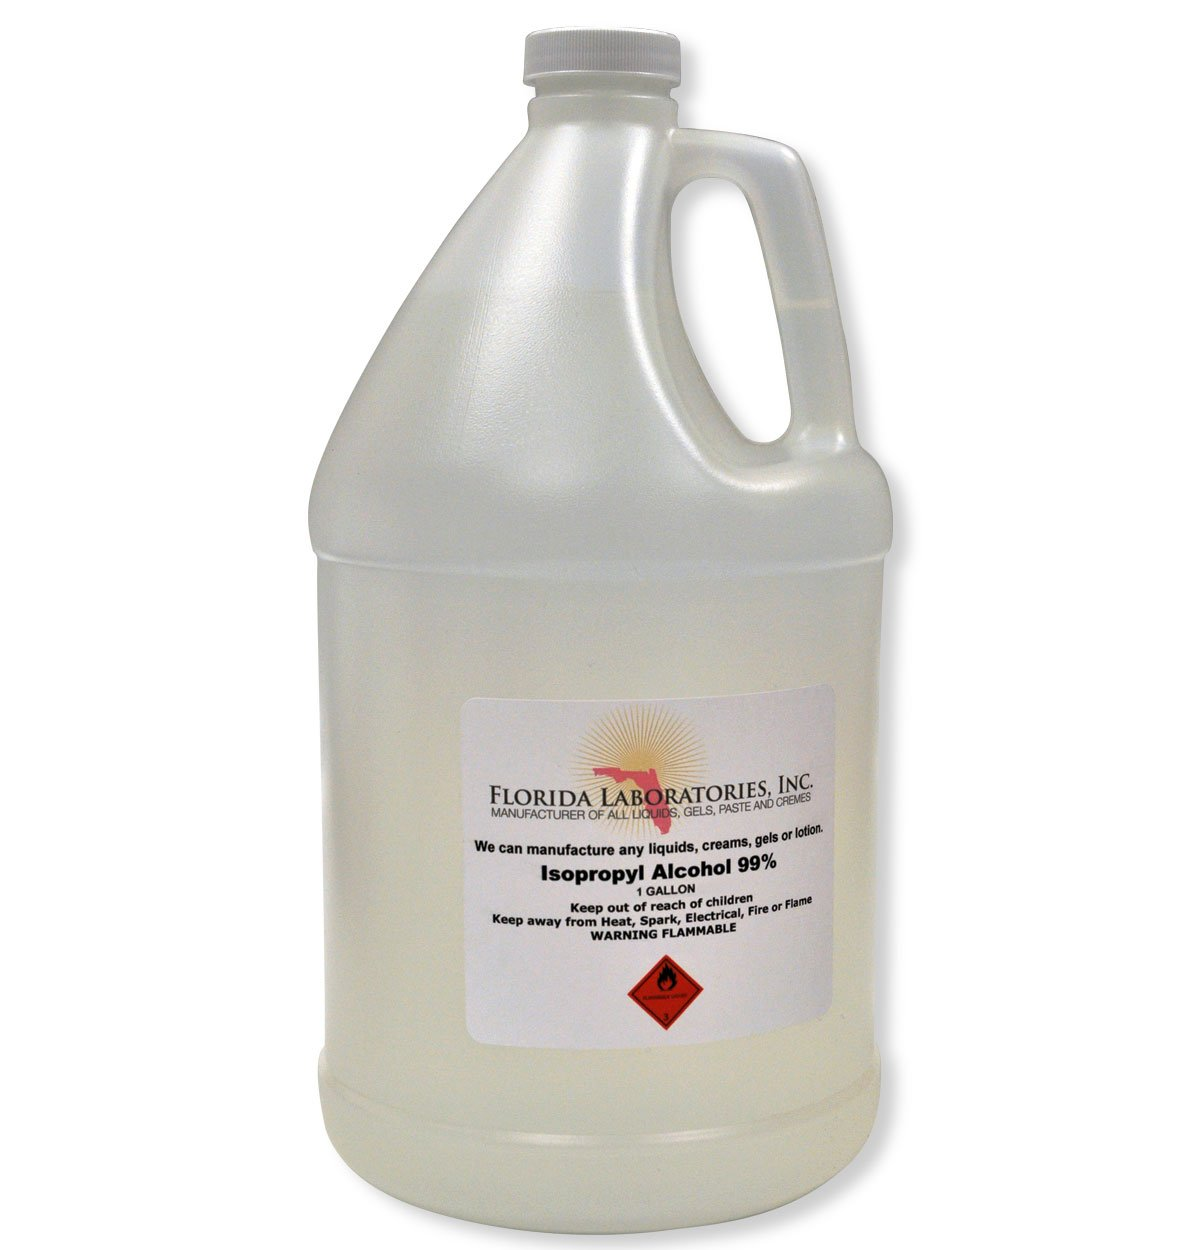 1 Gallon Isopropyl Alcohol Grade 99% Anhydrous - Pack of 4 Quarts by Florida Laboratories, Inc.